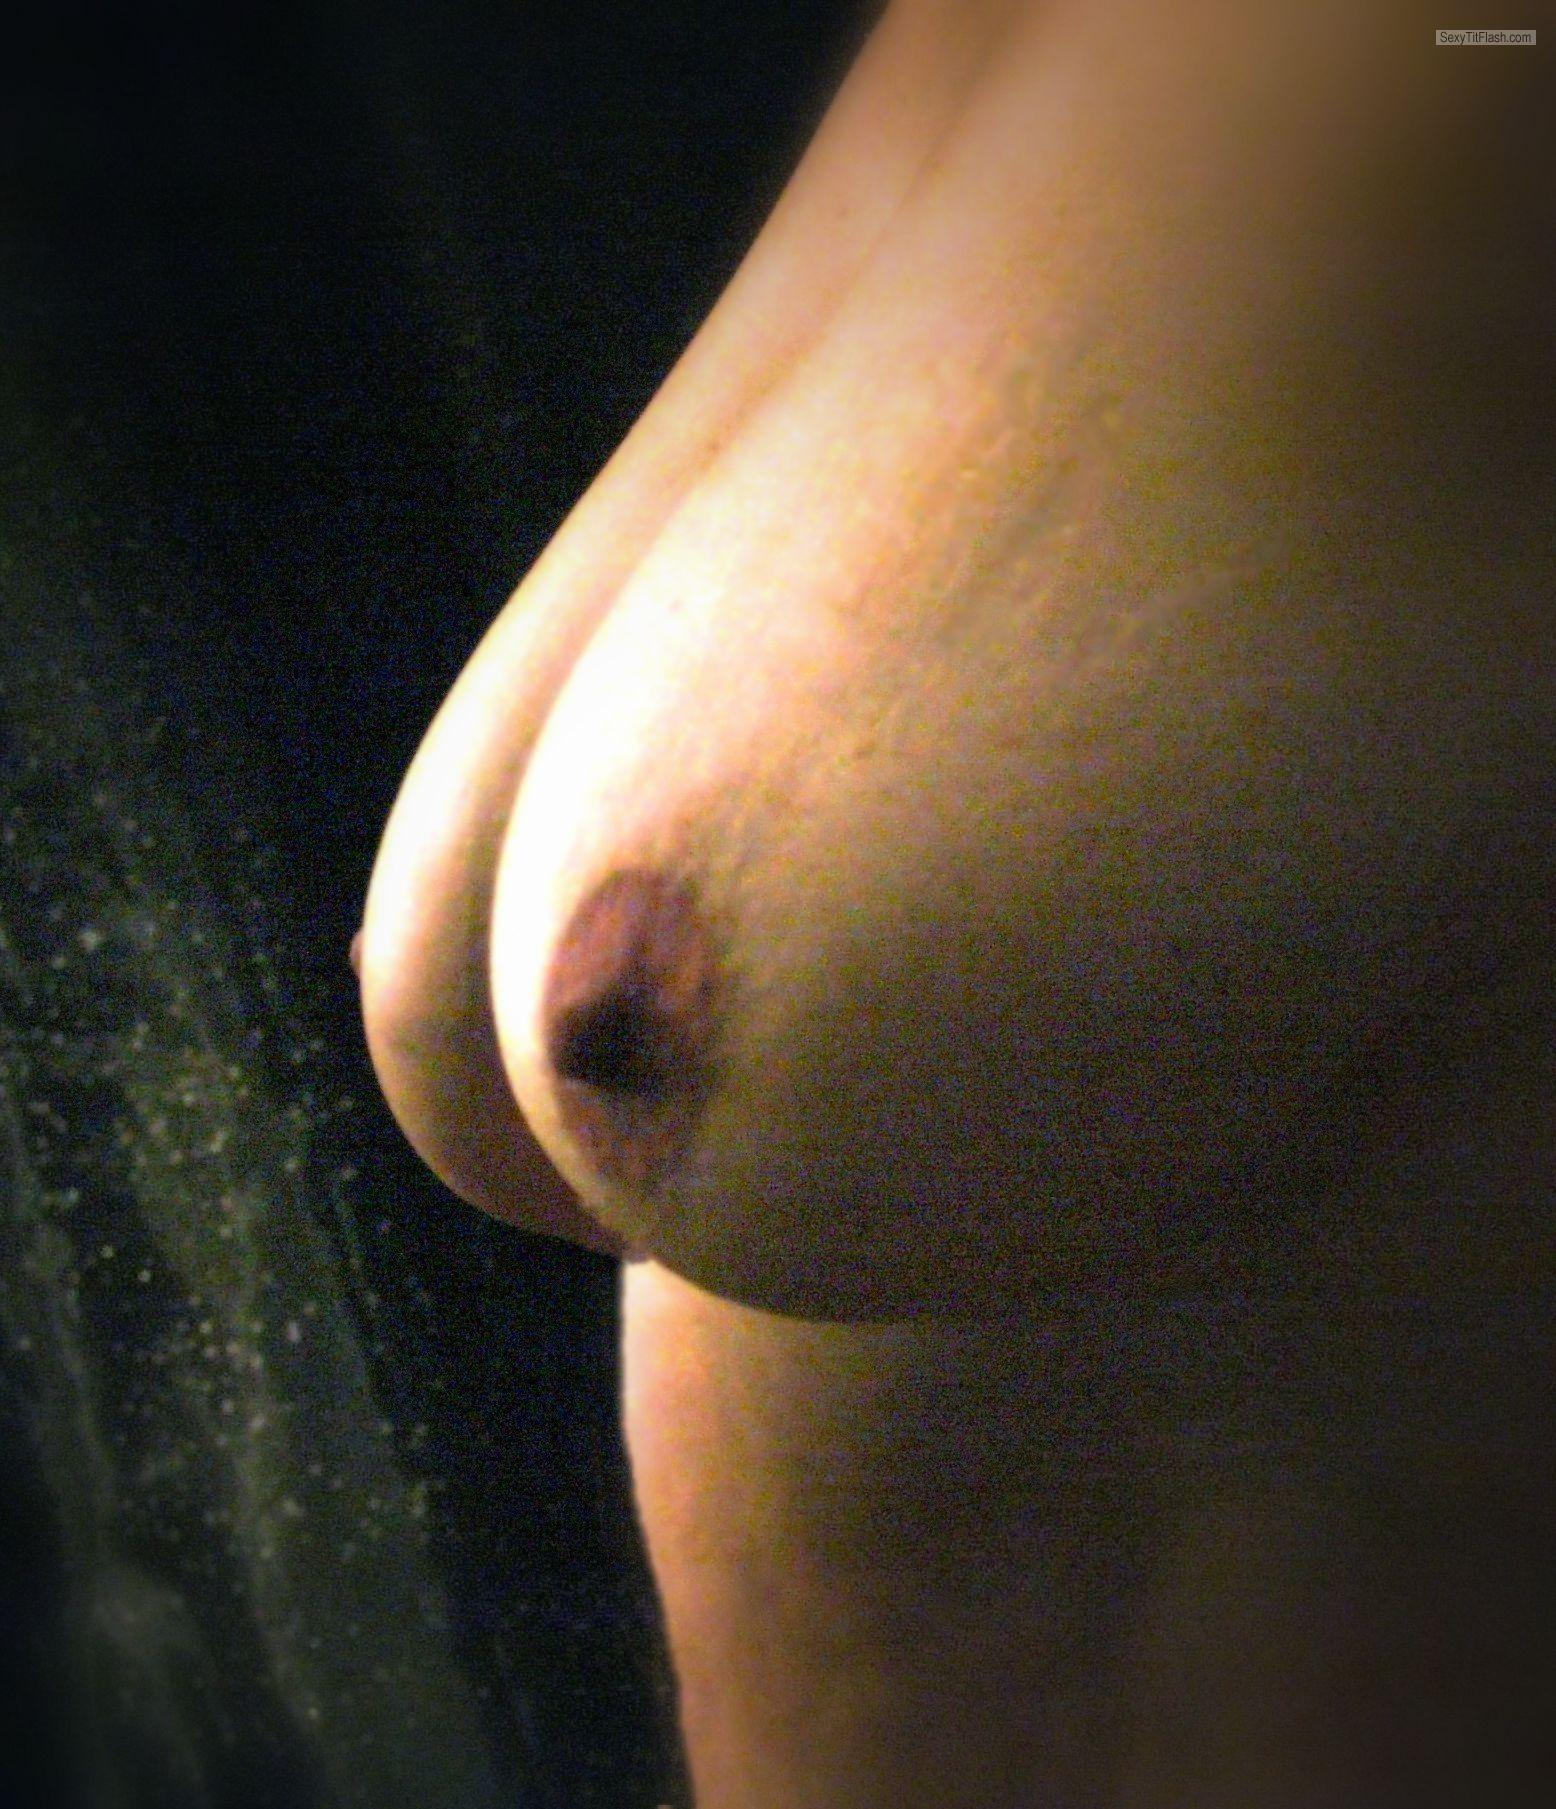 Tit Flash: Girlfriend's Very Big Tits - Dobbie from United States